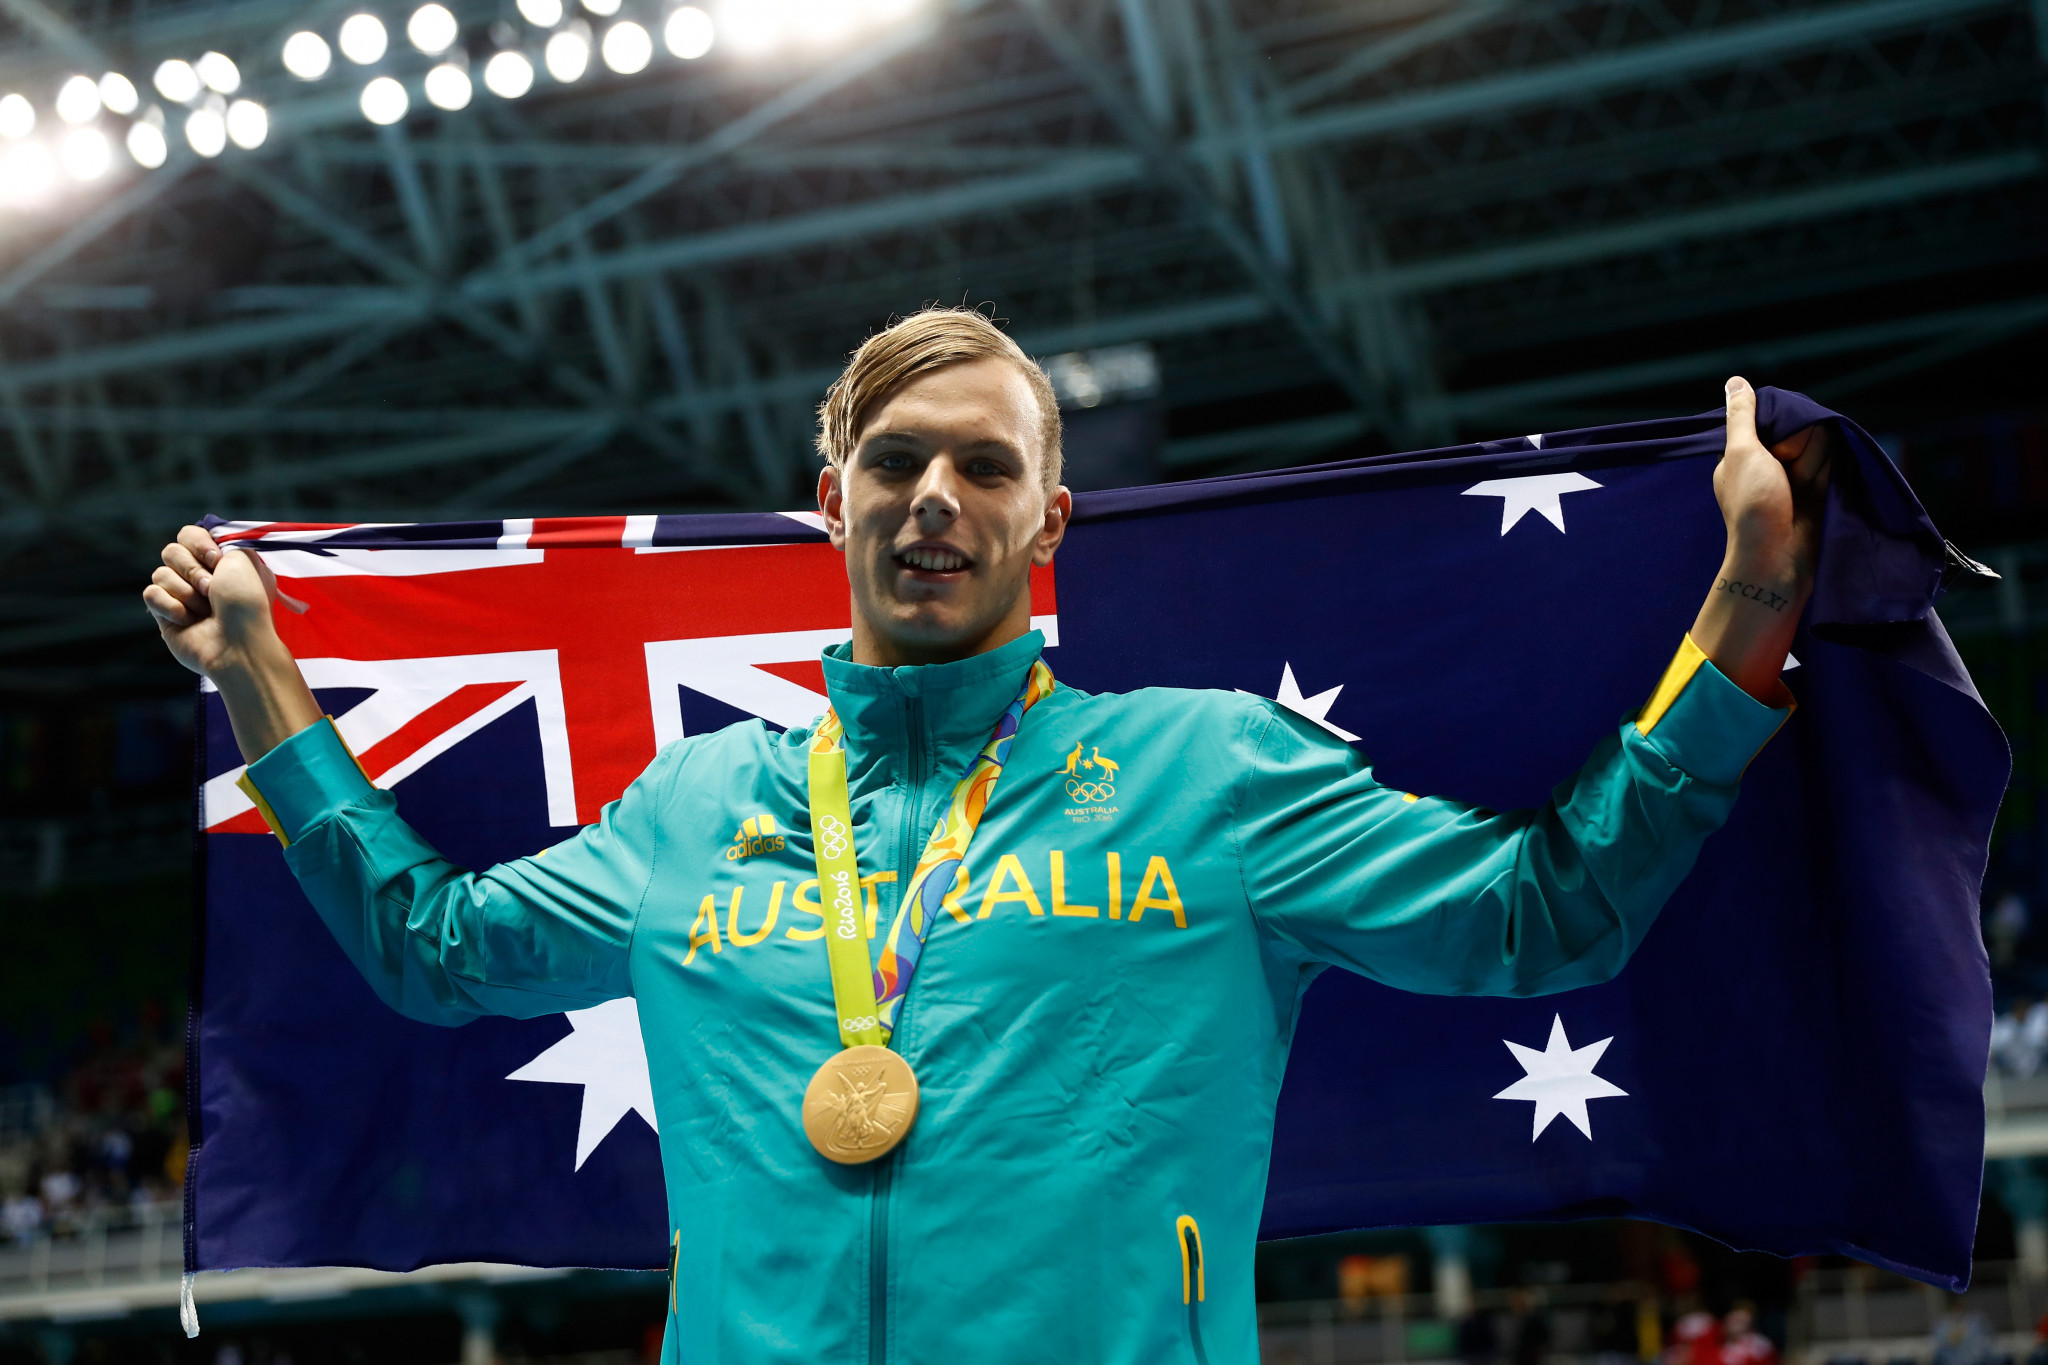 Swimmer Chalmers eyes title defence at Tokyo 2020 after shoulder surgery